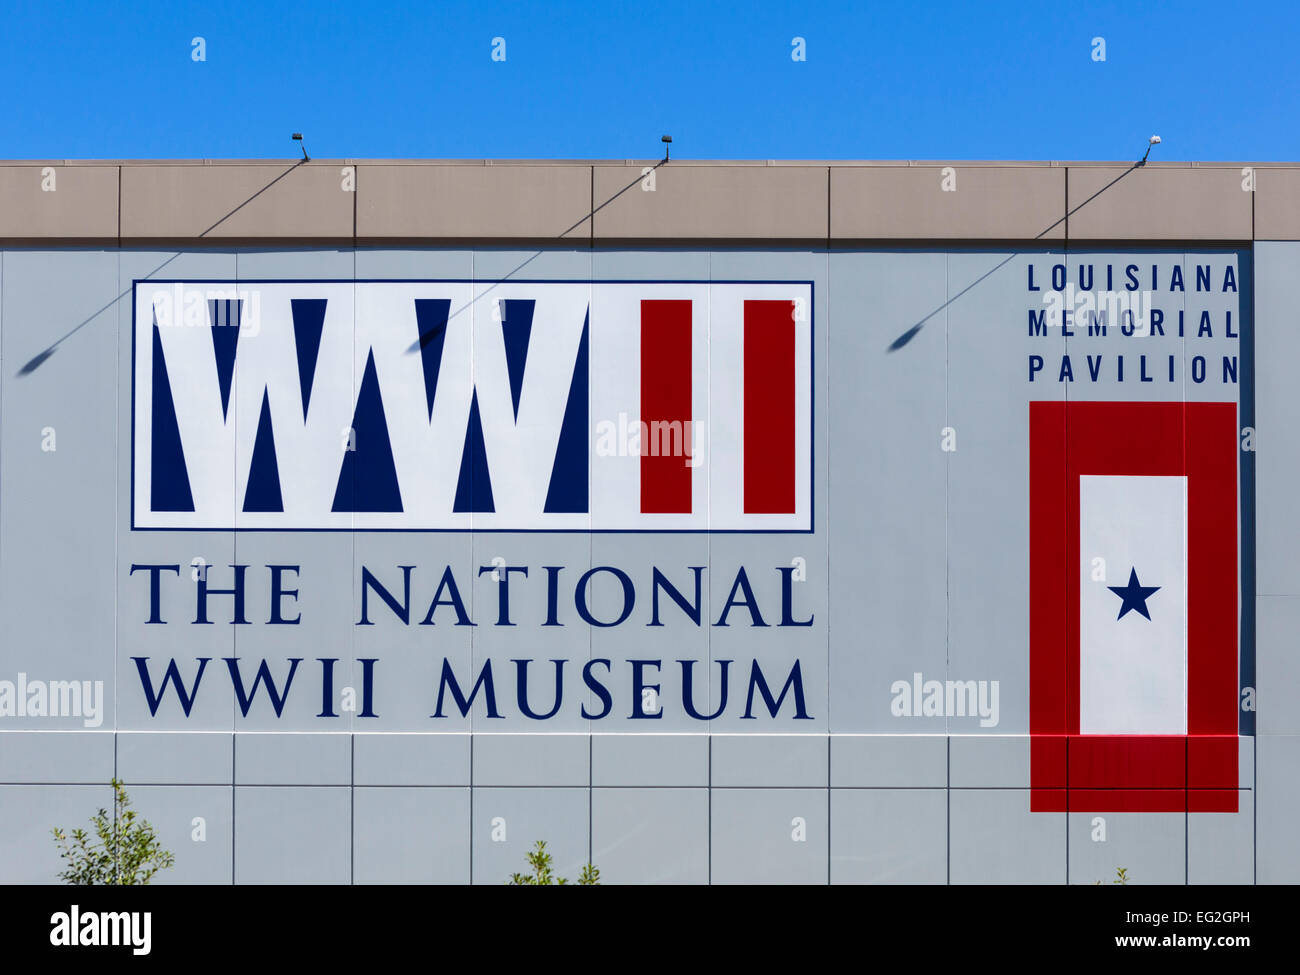 The National World War II Museum on Camp Street in downtown New Orleans, Lousiana, USA - Stock Image